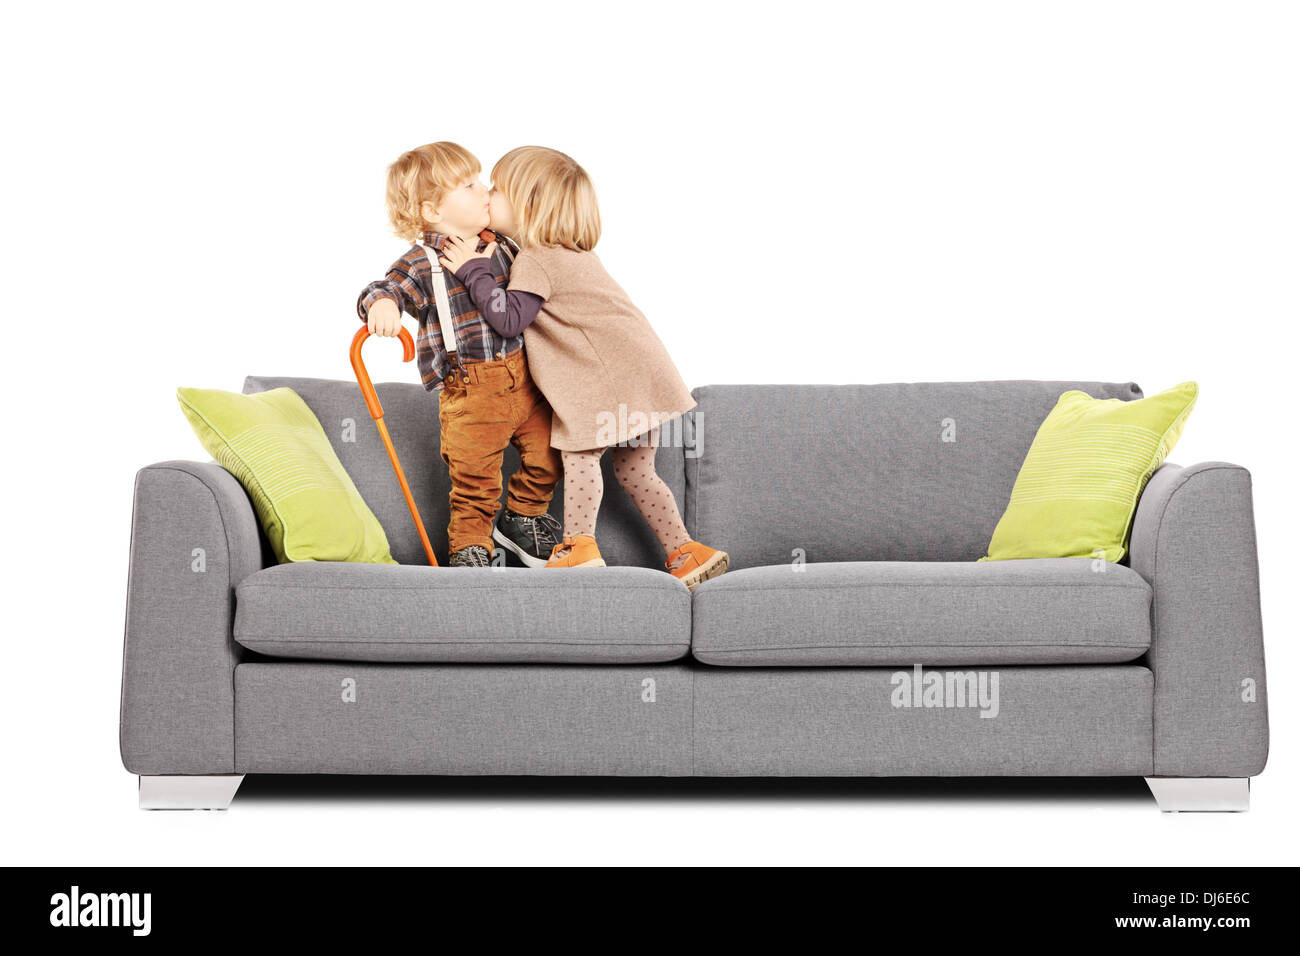 Two guys kissing on a sofa